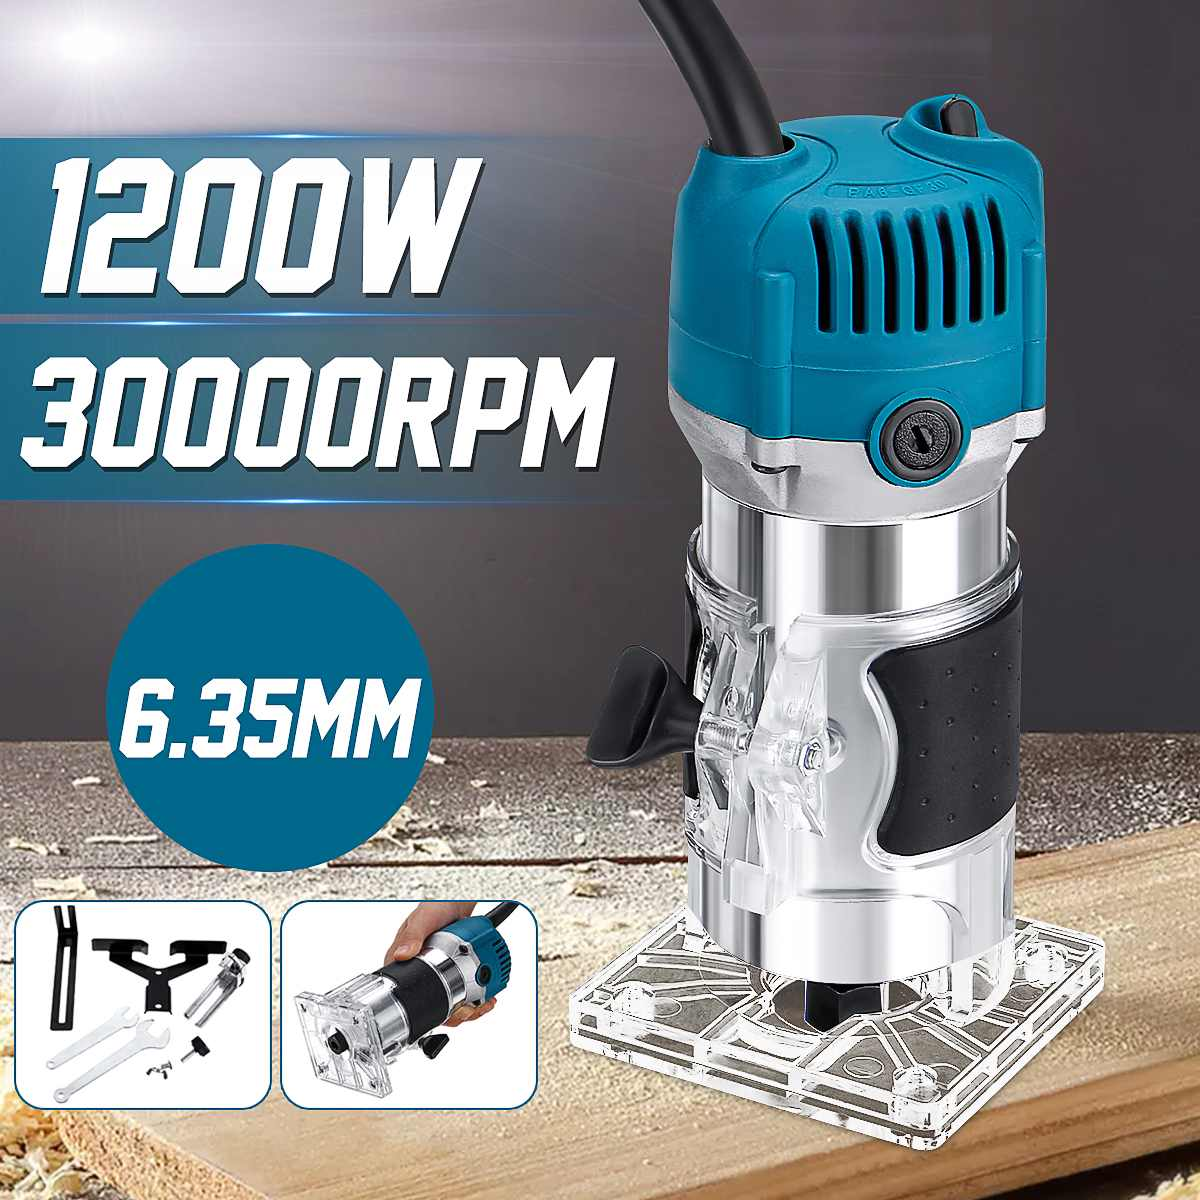 750W/1200W Wood Electric Trimmer Laminator Router Joiners Tool Woodworking Electric Hand Trimmer Wood Laminator With Router Bits